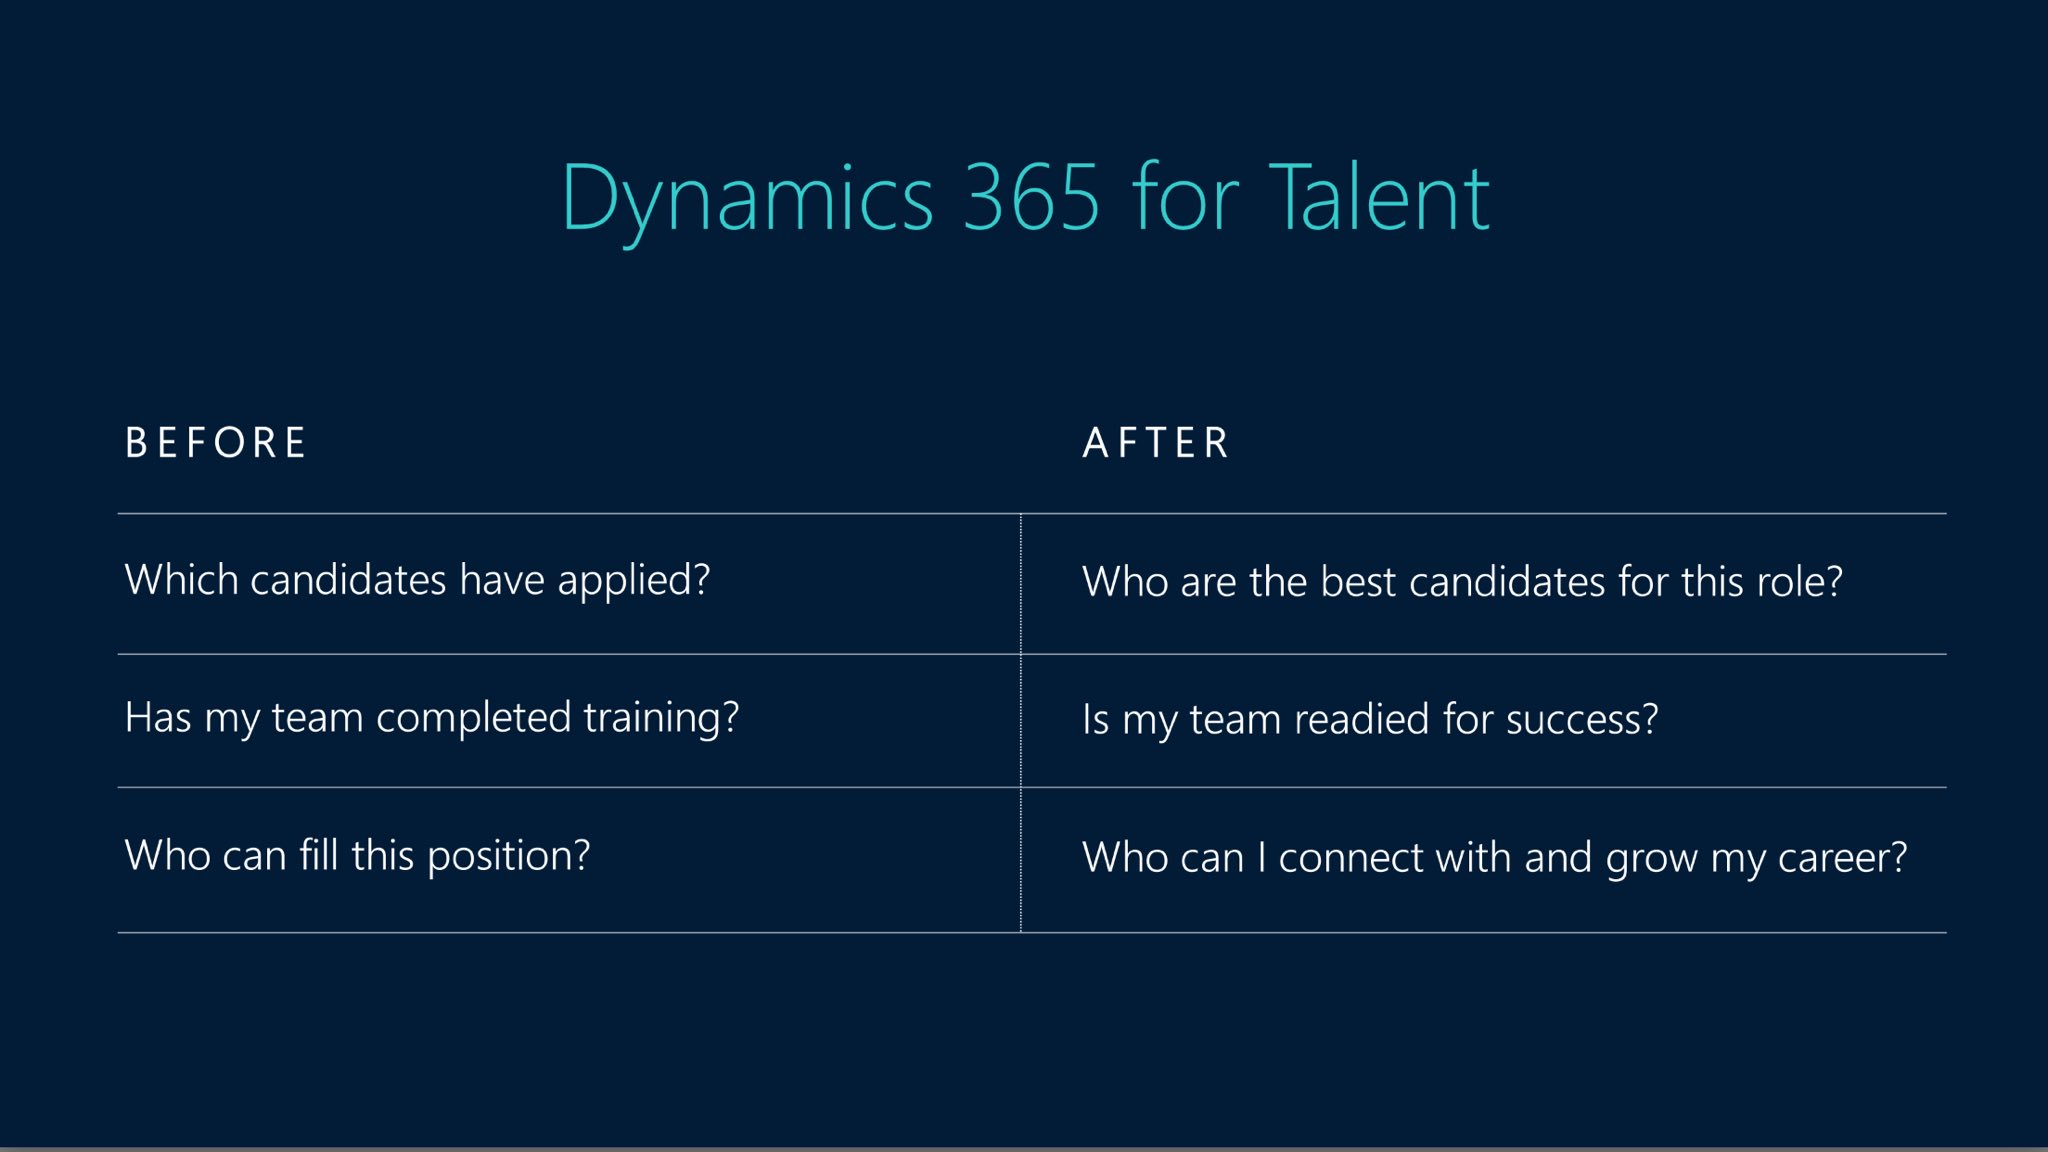 Making it easier for recruiters and candidates- #digitaltransformation w/ @MSFTDynamics365 #msbusinessfwd https://t.co/saWjW0ksjz